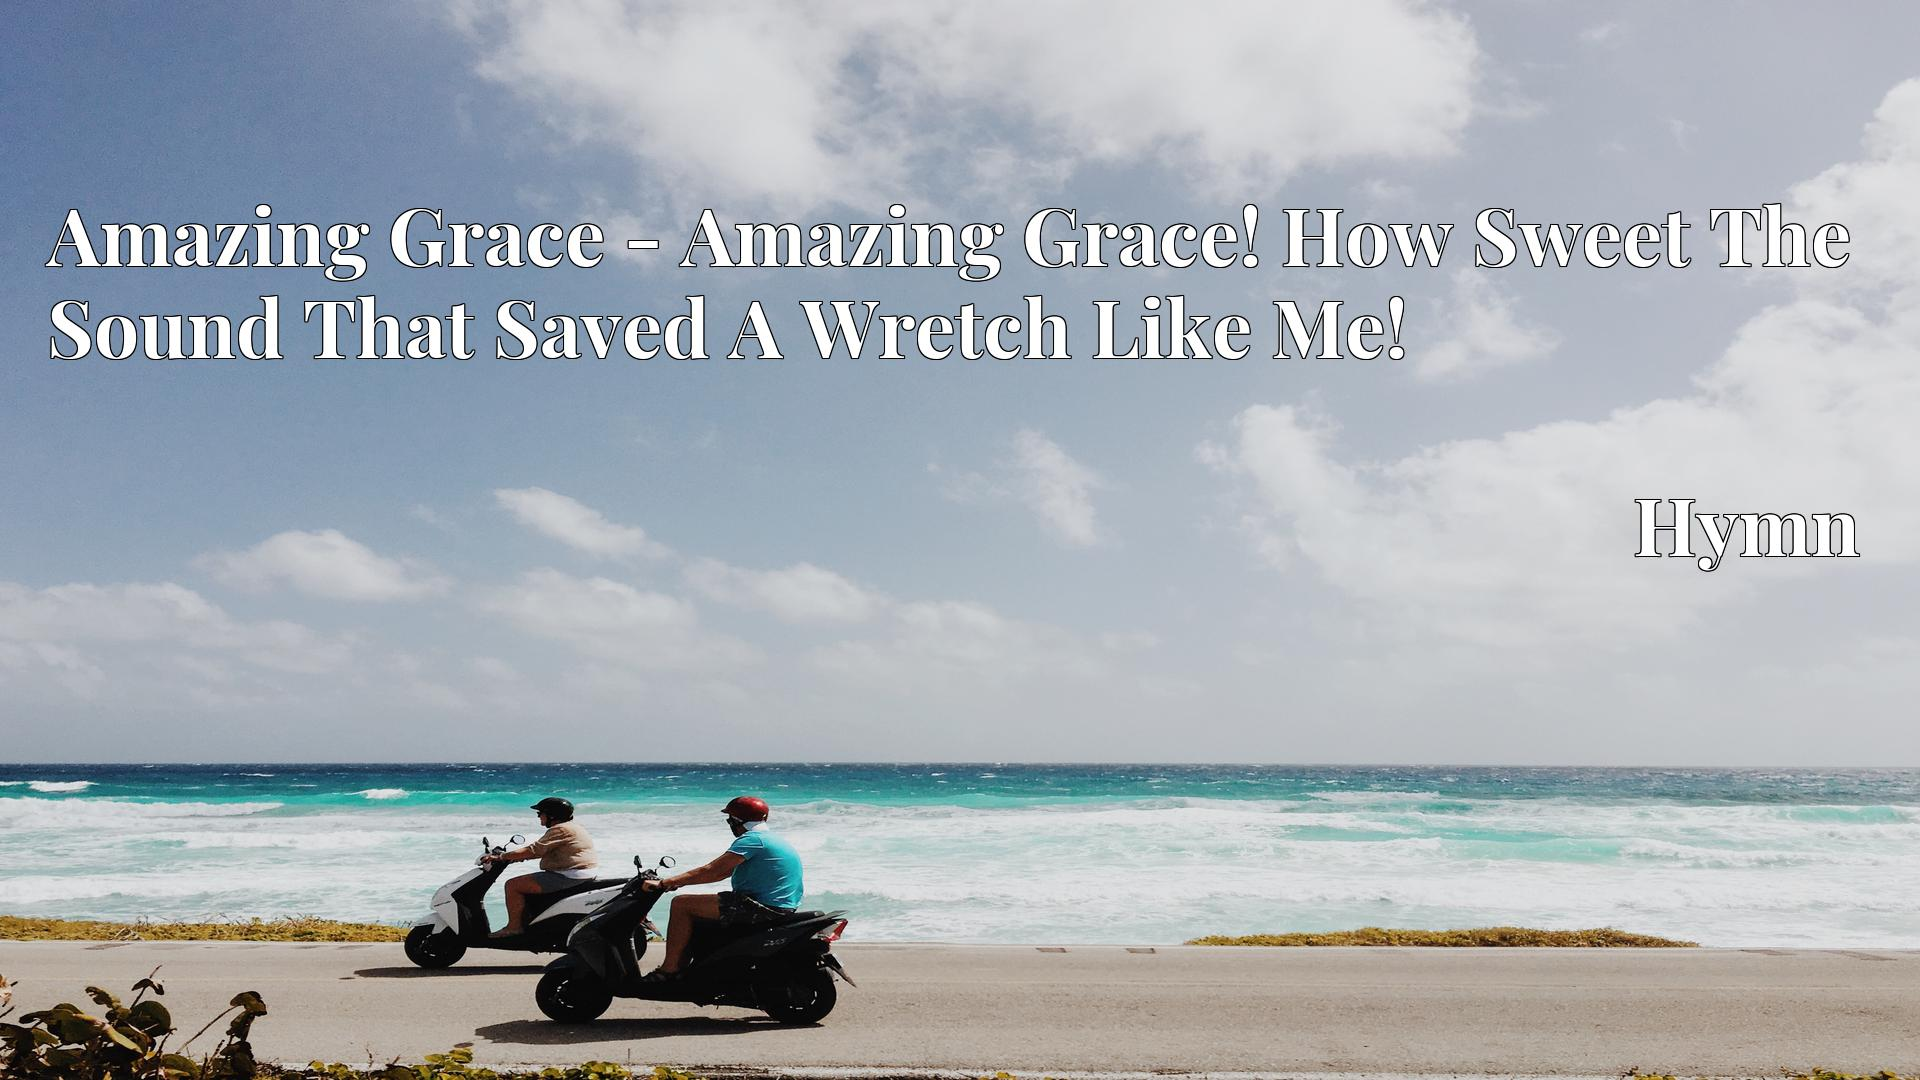 Amazing Grace - Amazing Grace! How Sweet The Sound That Saved A Wretch Like Me! - Hymn